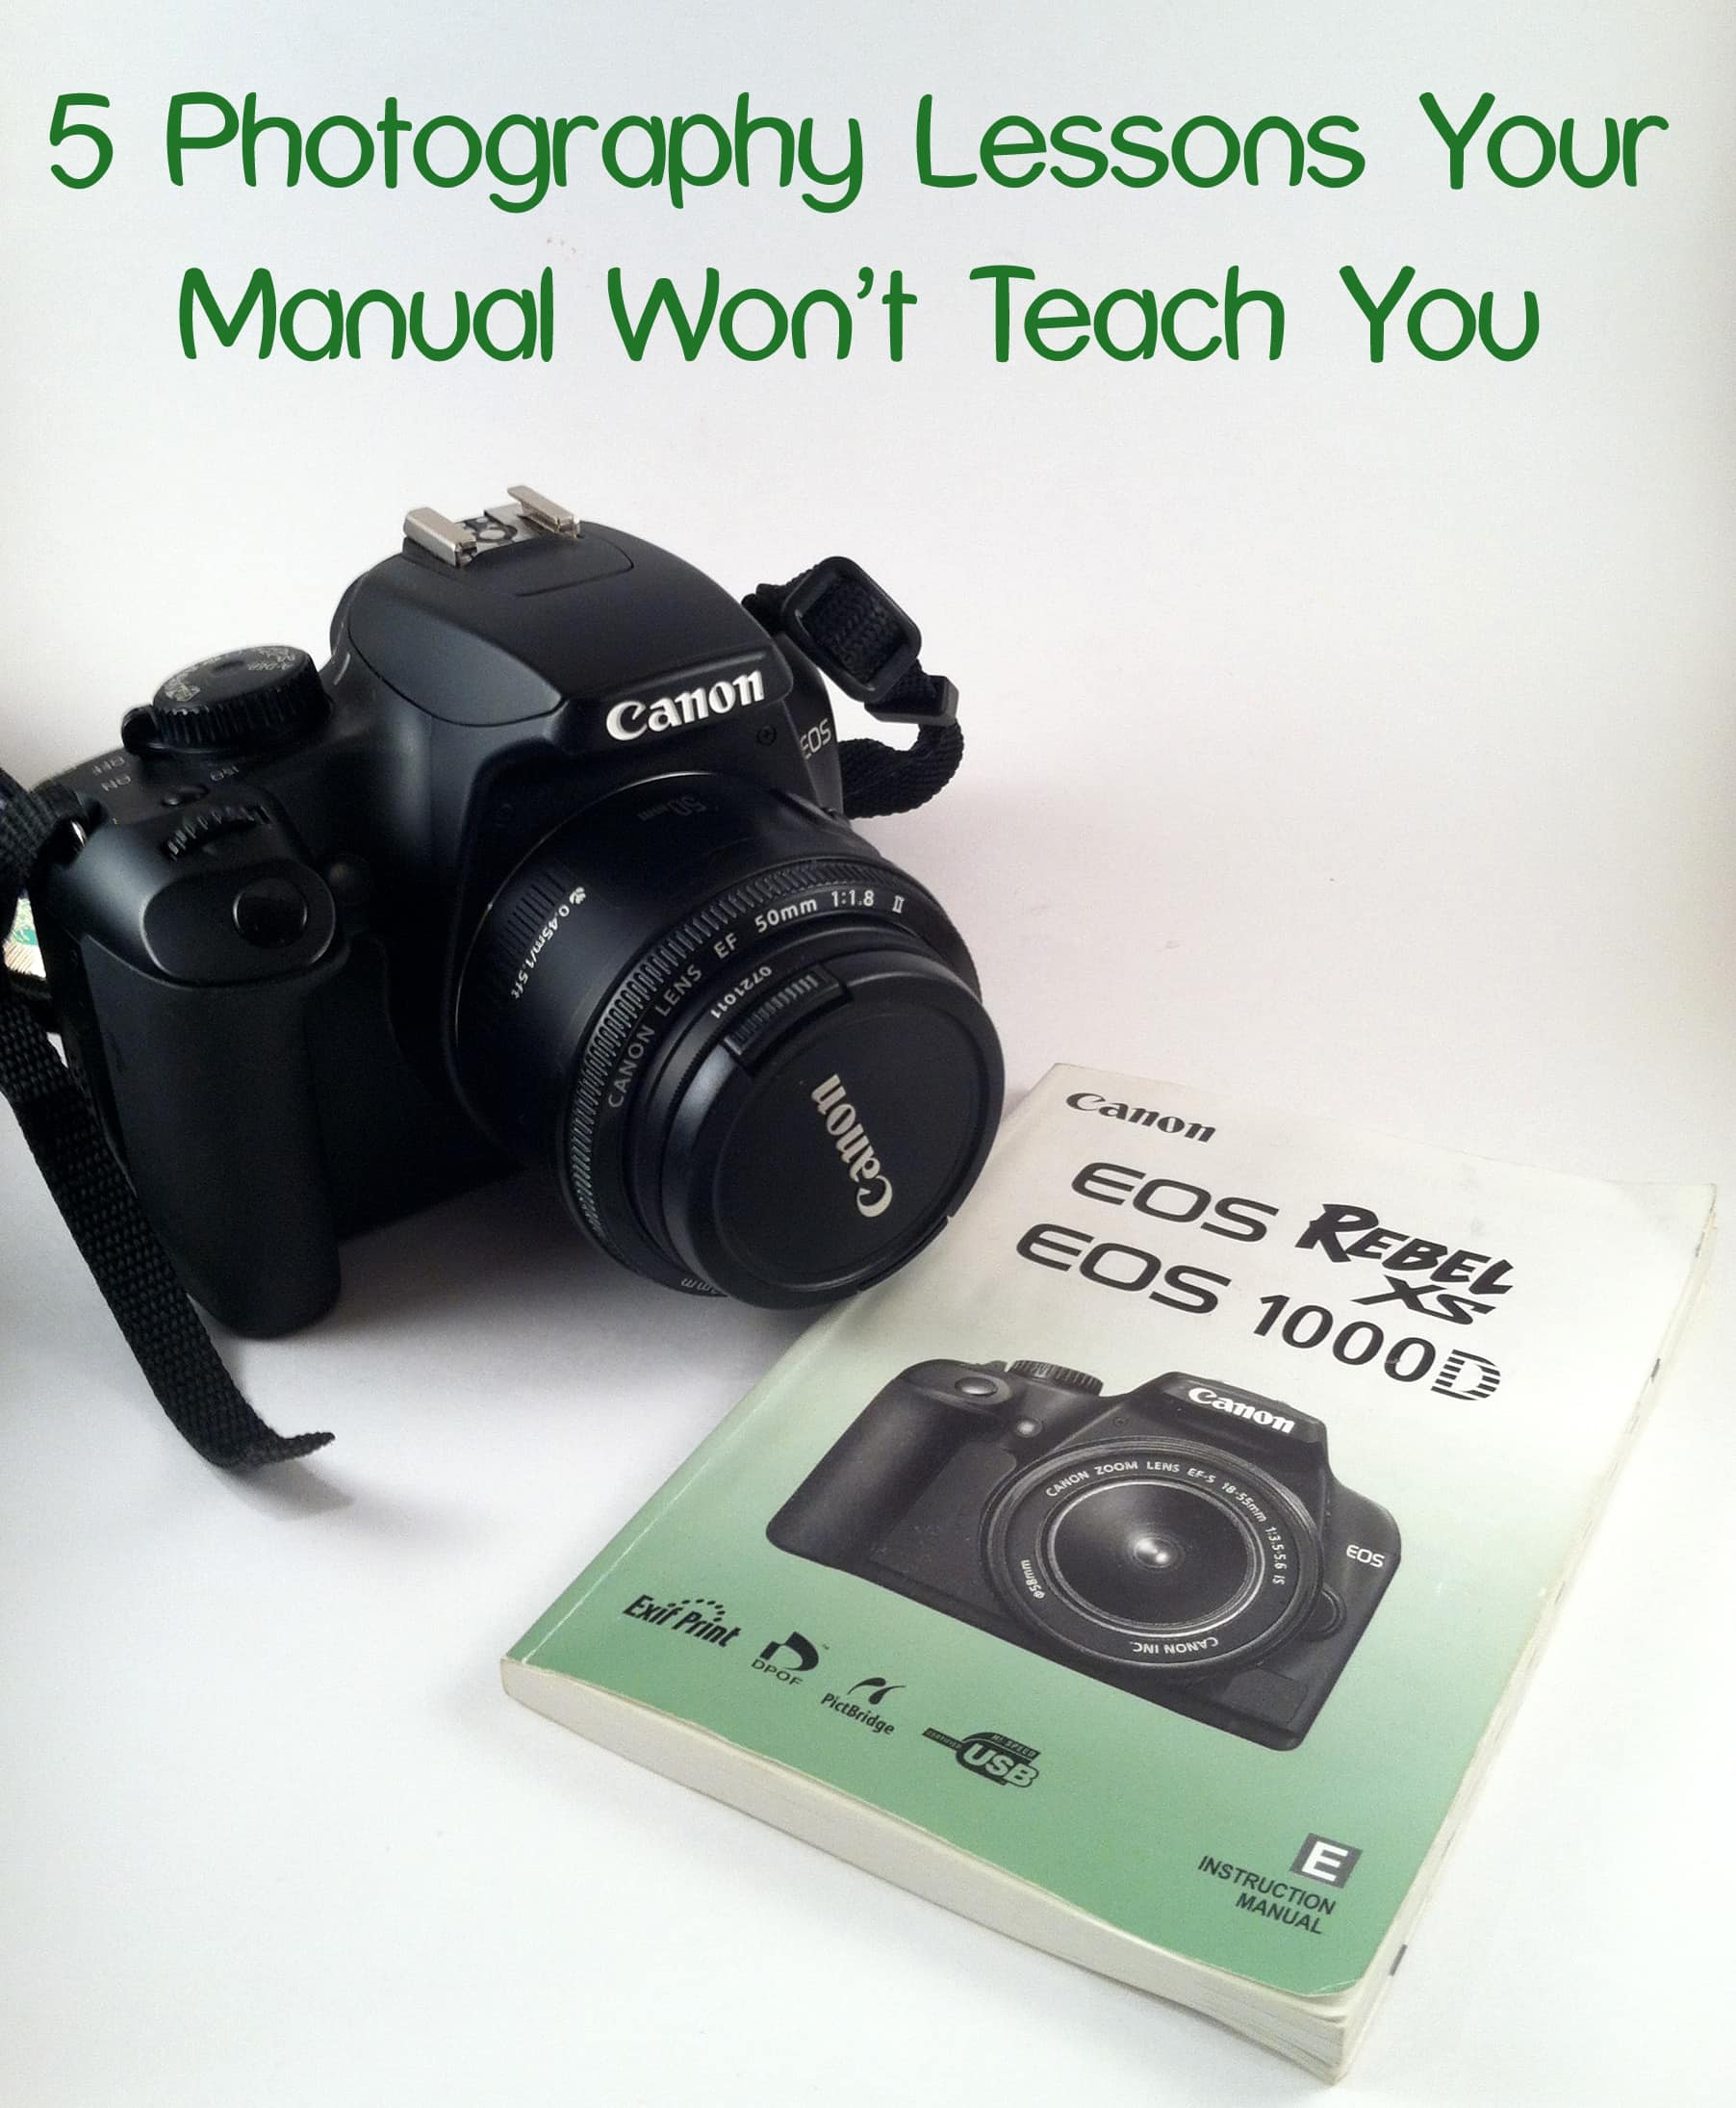 5 Photography Lessons Your Manual Won't Teach You from www.chocolatemoosey.com